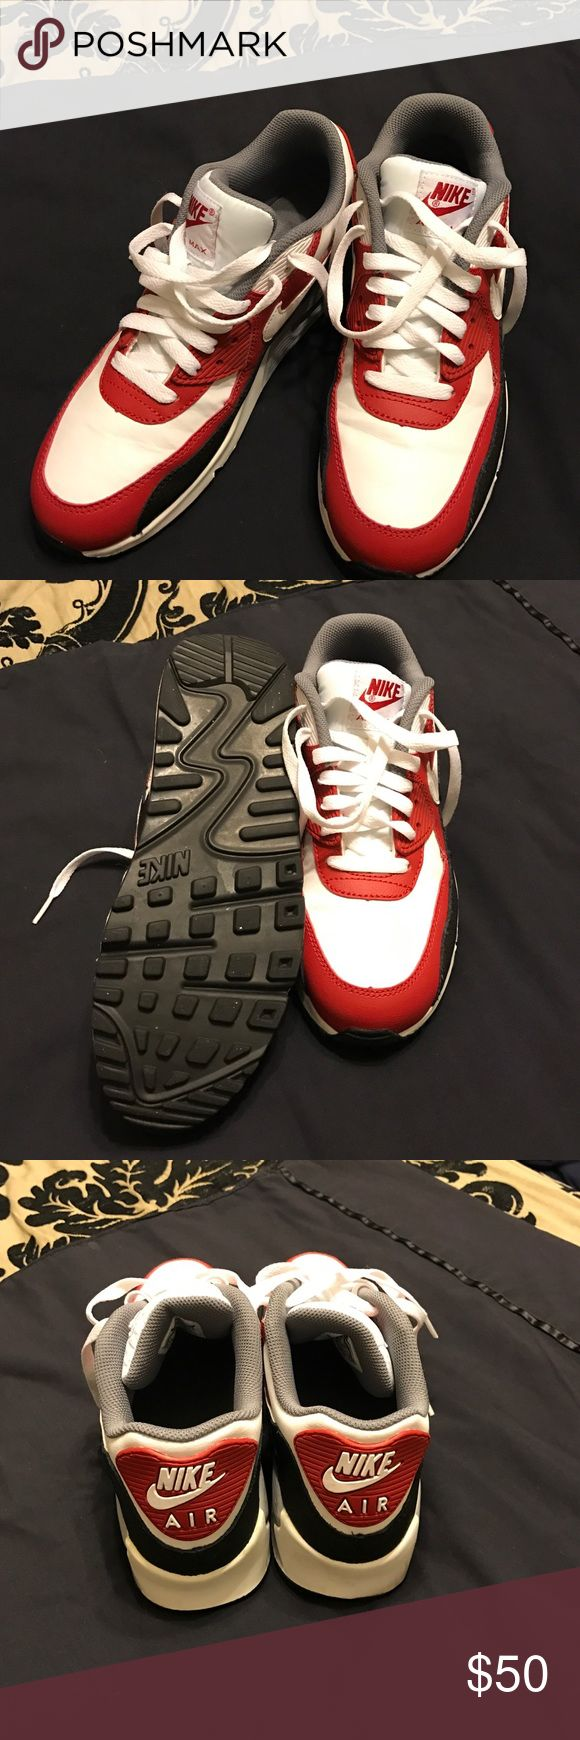 90 Nike Air Max ***Price Firm**** 1990 Nike Air Max. Great Condition. Worn 1x. No original box. Fits Ladies Shoe 7.5/8 Nike Shoes Sneakers